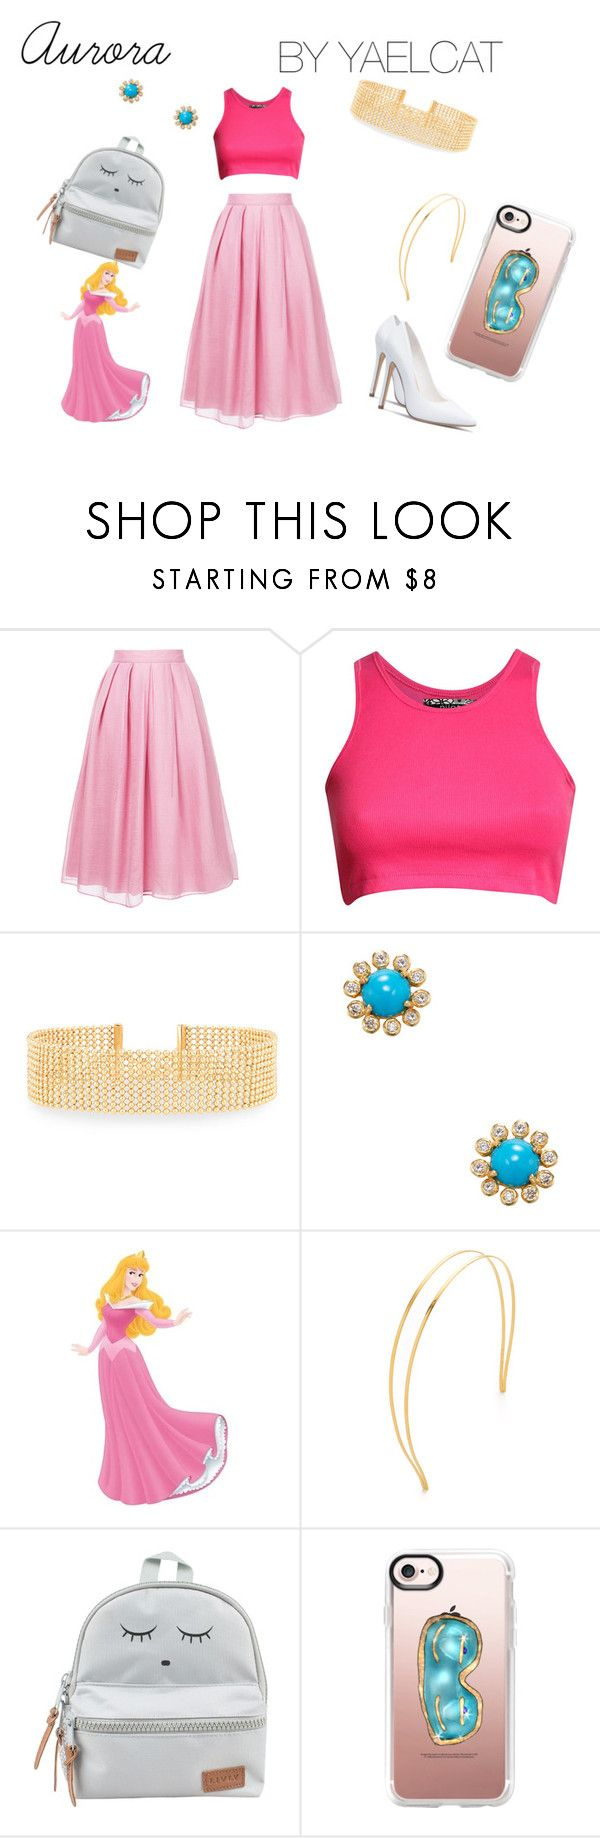 """""""Aurora (Sleeping Beauty)"""" by yaelcat ❤ liked on Polyvore featuring Jupe By Jackie, Pilot, Lydell NYC, ADORNIA, WALL, Mrs. President & Co., Casetify, sleepingbeauty, aurora and disneybound"""